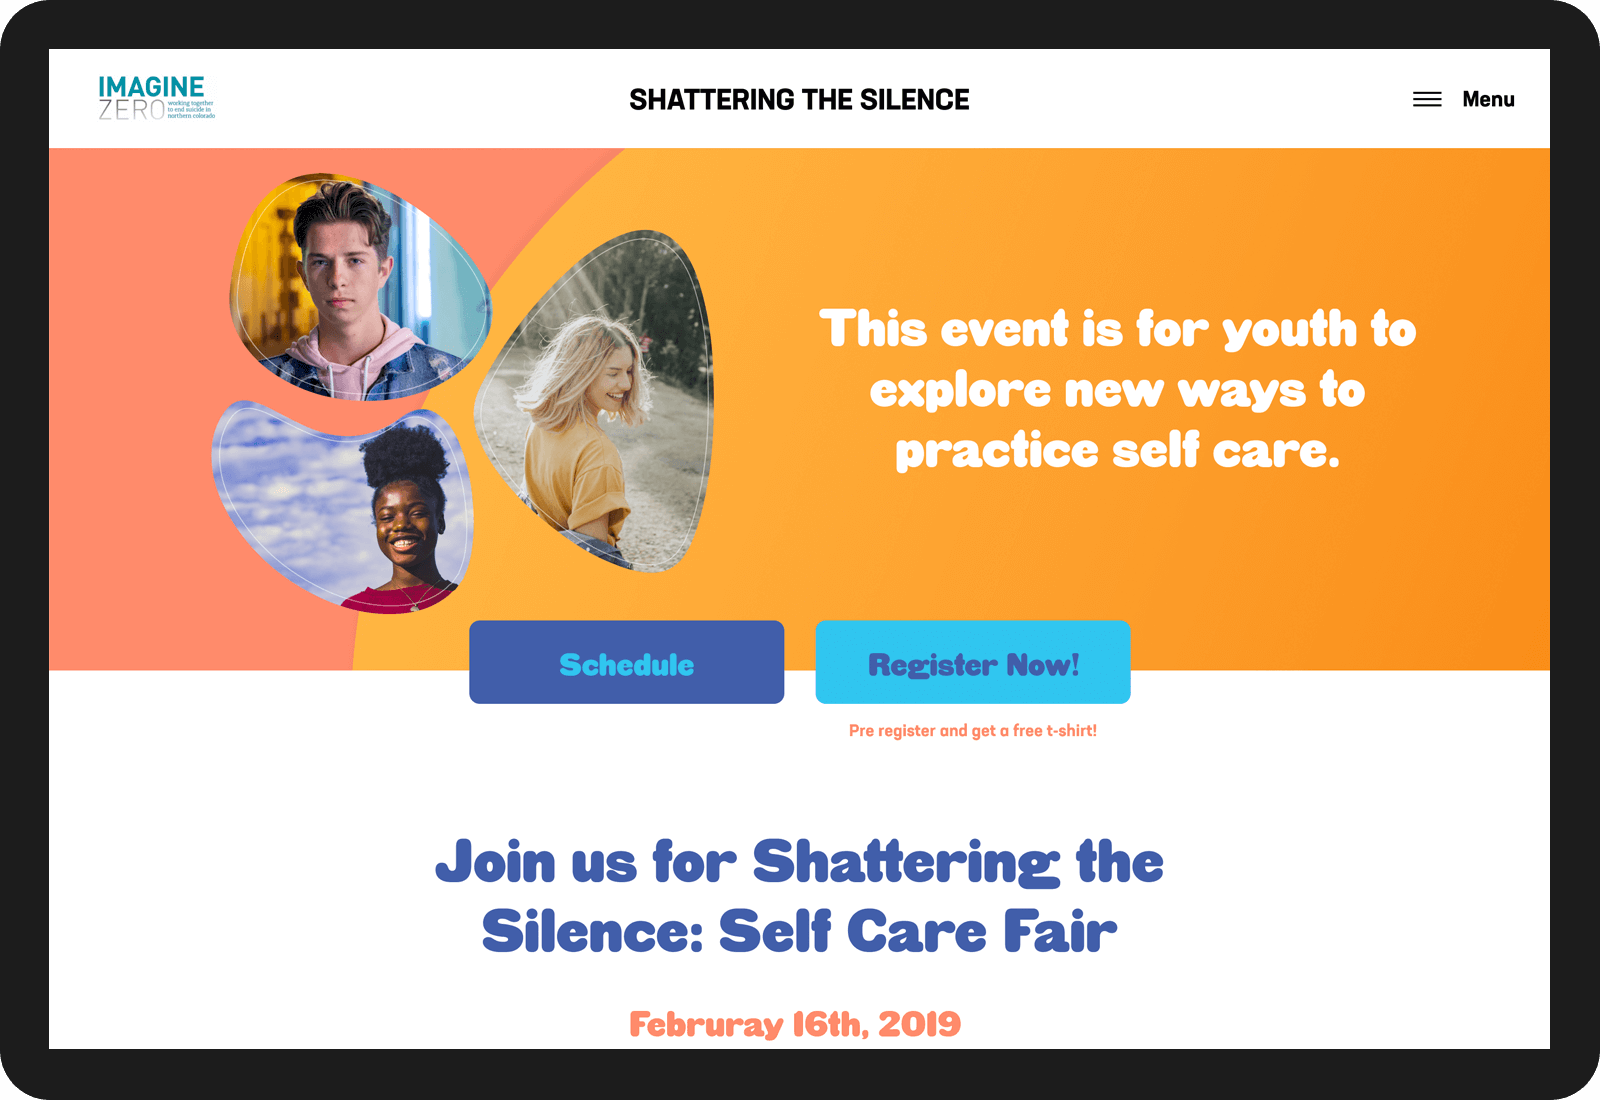 Shattering the Silence: Self Care Fair